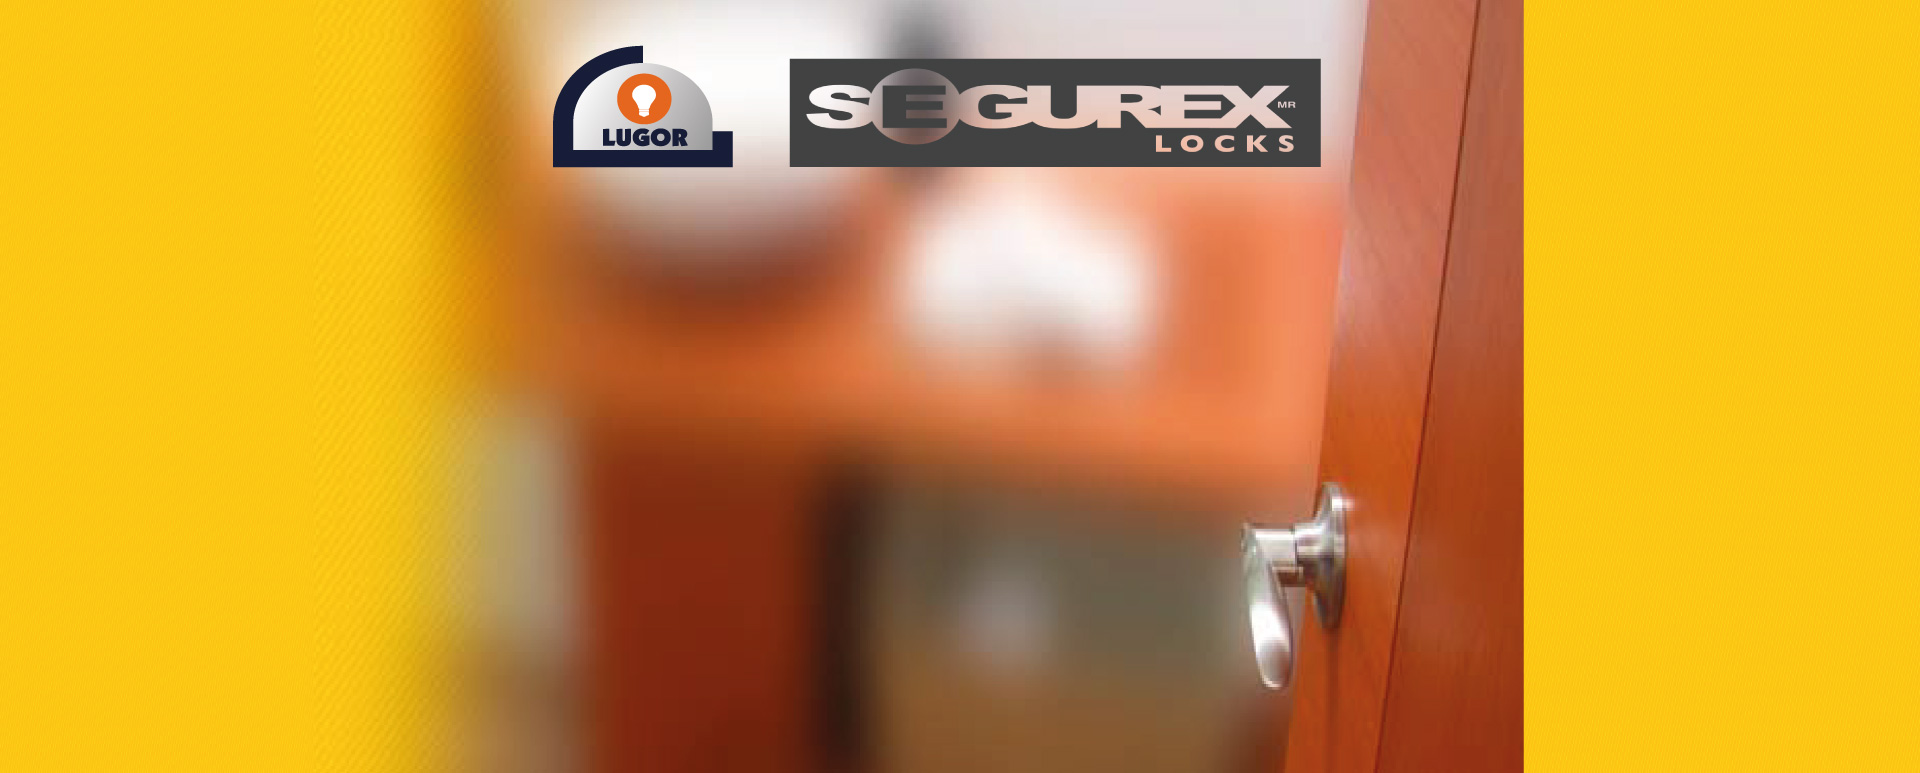 SPECTRUM-BRANDS-6-segurex <!-SEGUREXLOCKS->